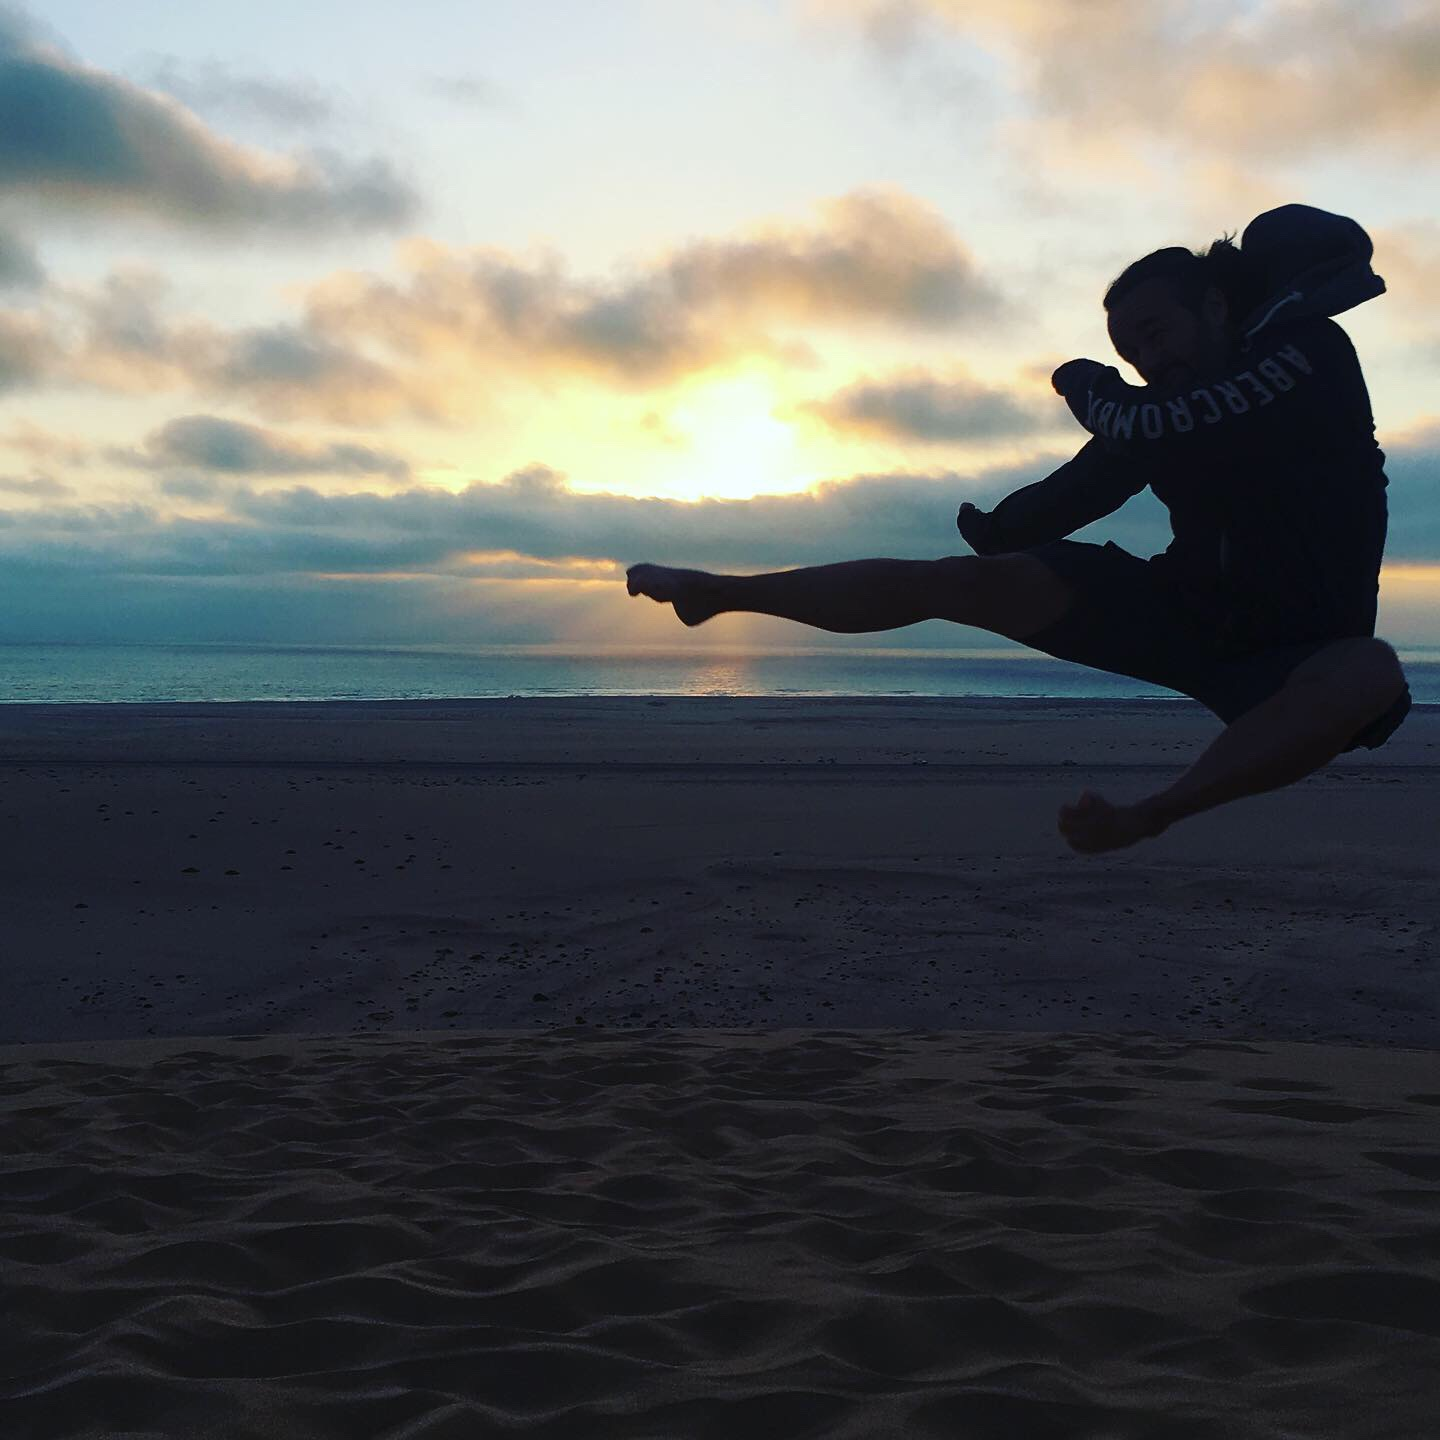 Flying at the beach